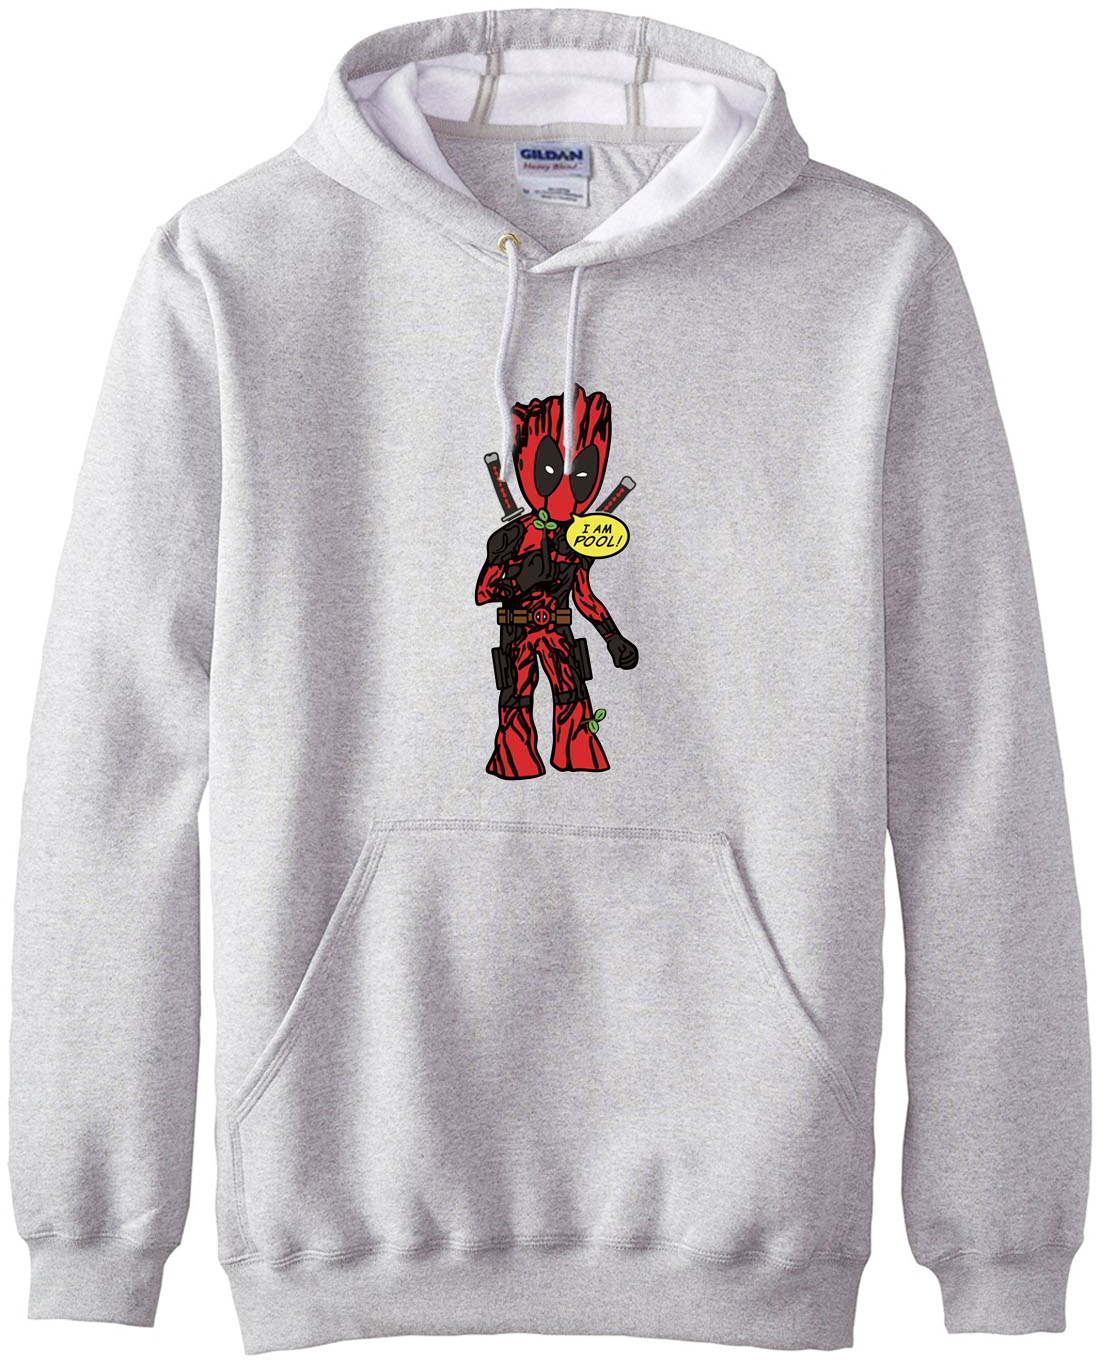 I Am Groot & Deadpool Print Funny Clothing 2019 Autumn Winter Men Hoodies Hipster Style Warm Fleece Sweatshirt Loose Fit Outwear